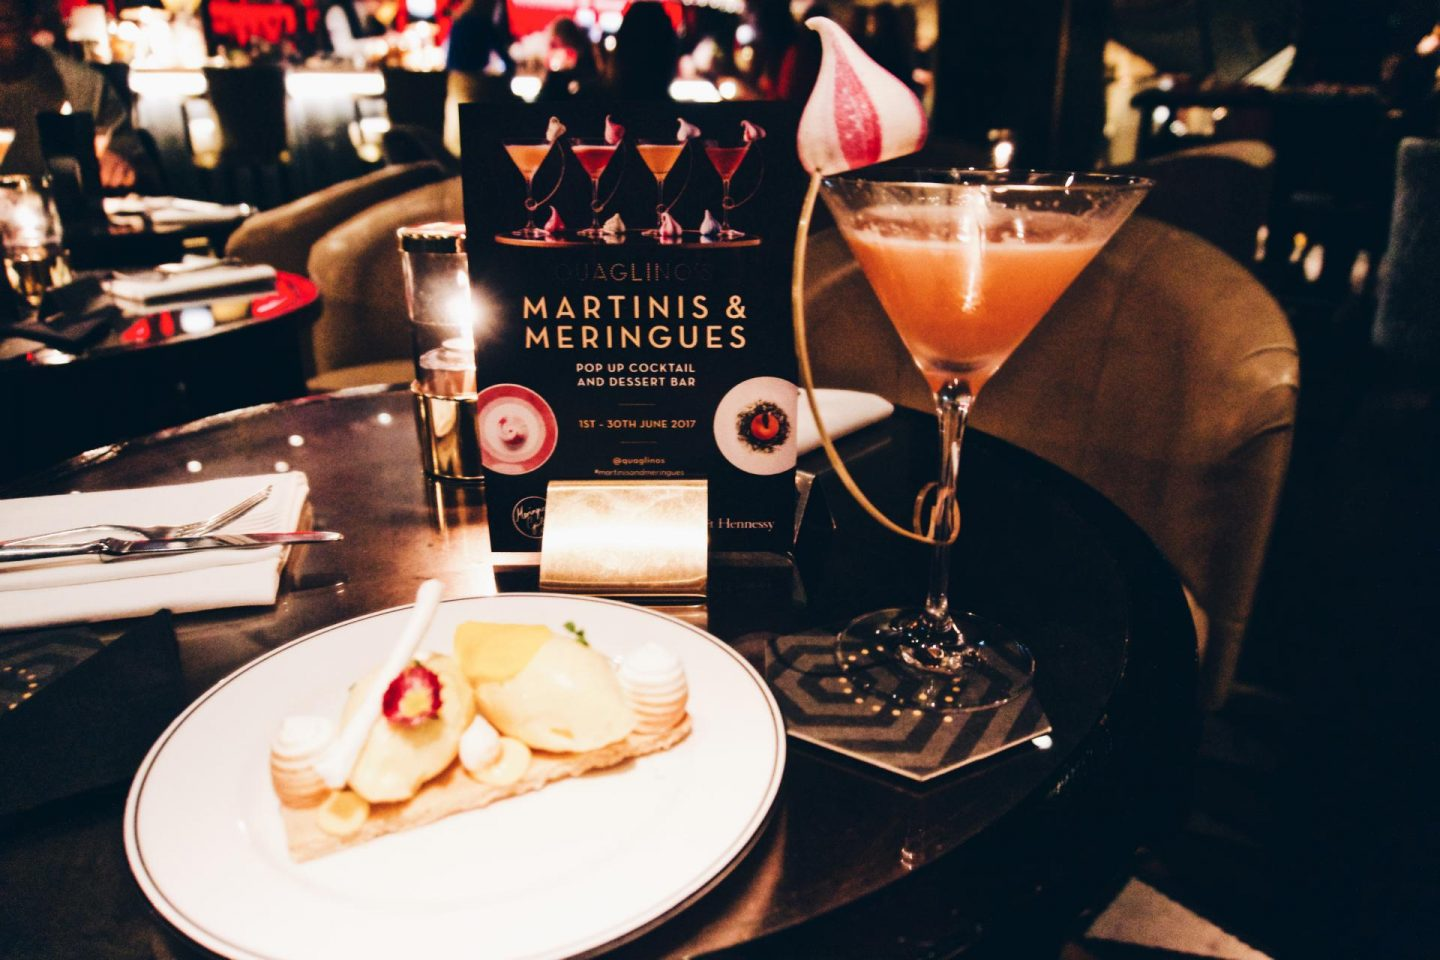 Martini and Meringues